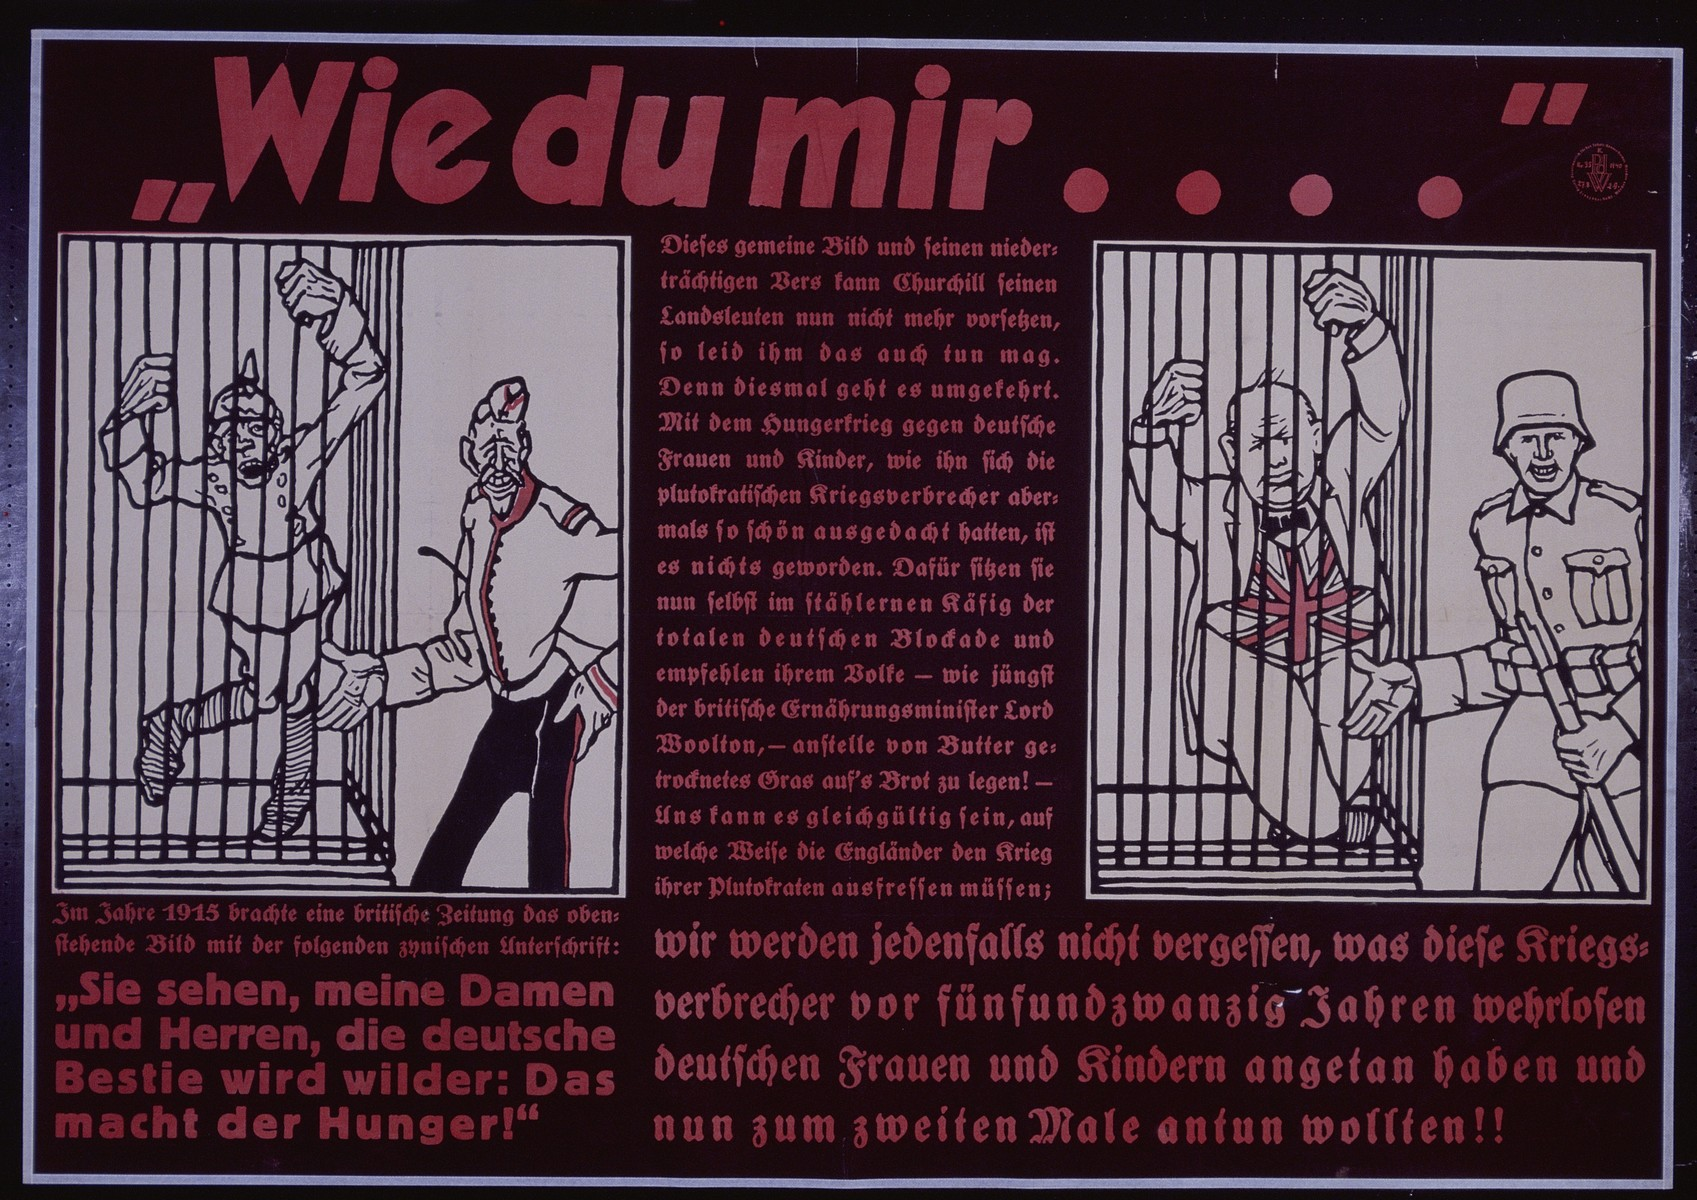 """Nazi propaganda poster entitled, """"Wie du mir...!"""" issued by the """"Parole der Woche,"""" a wall newspaper (Wandzeitung) published by the National Socialist Party propaganda office in Munich."""